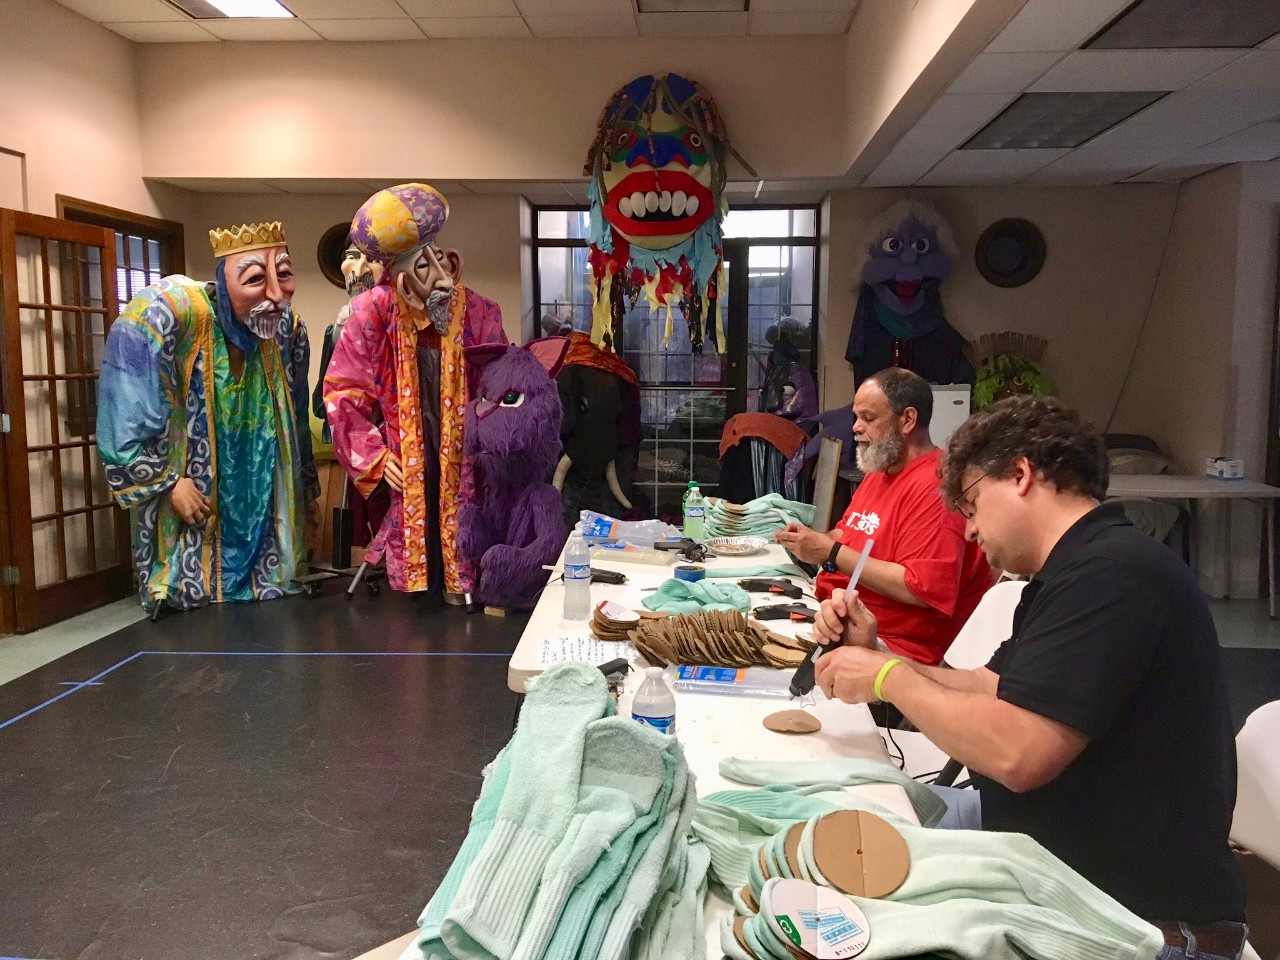 Two people sit at a table sewing costumes for large puppets standing in the background.